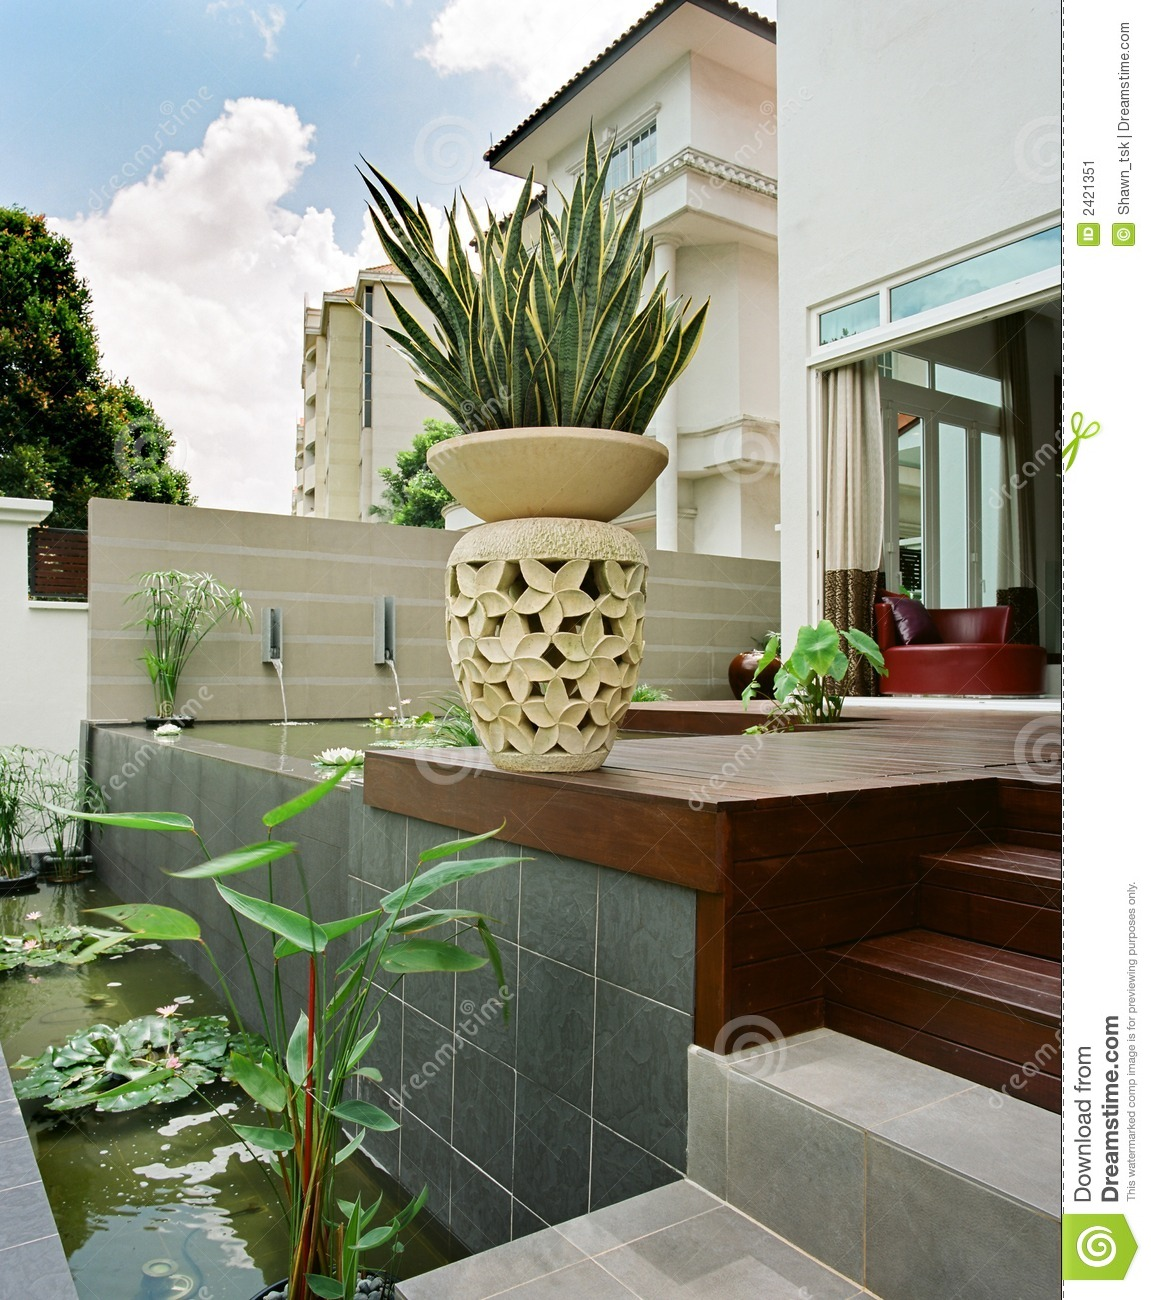 Interior design garden stock image image 2421351 for Manapat interior landscape designs